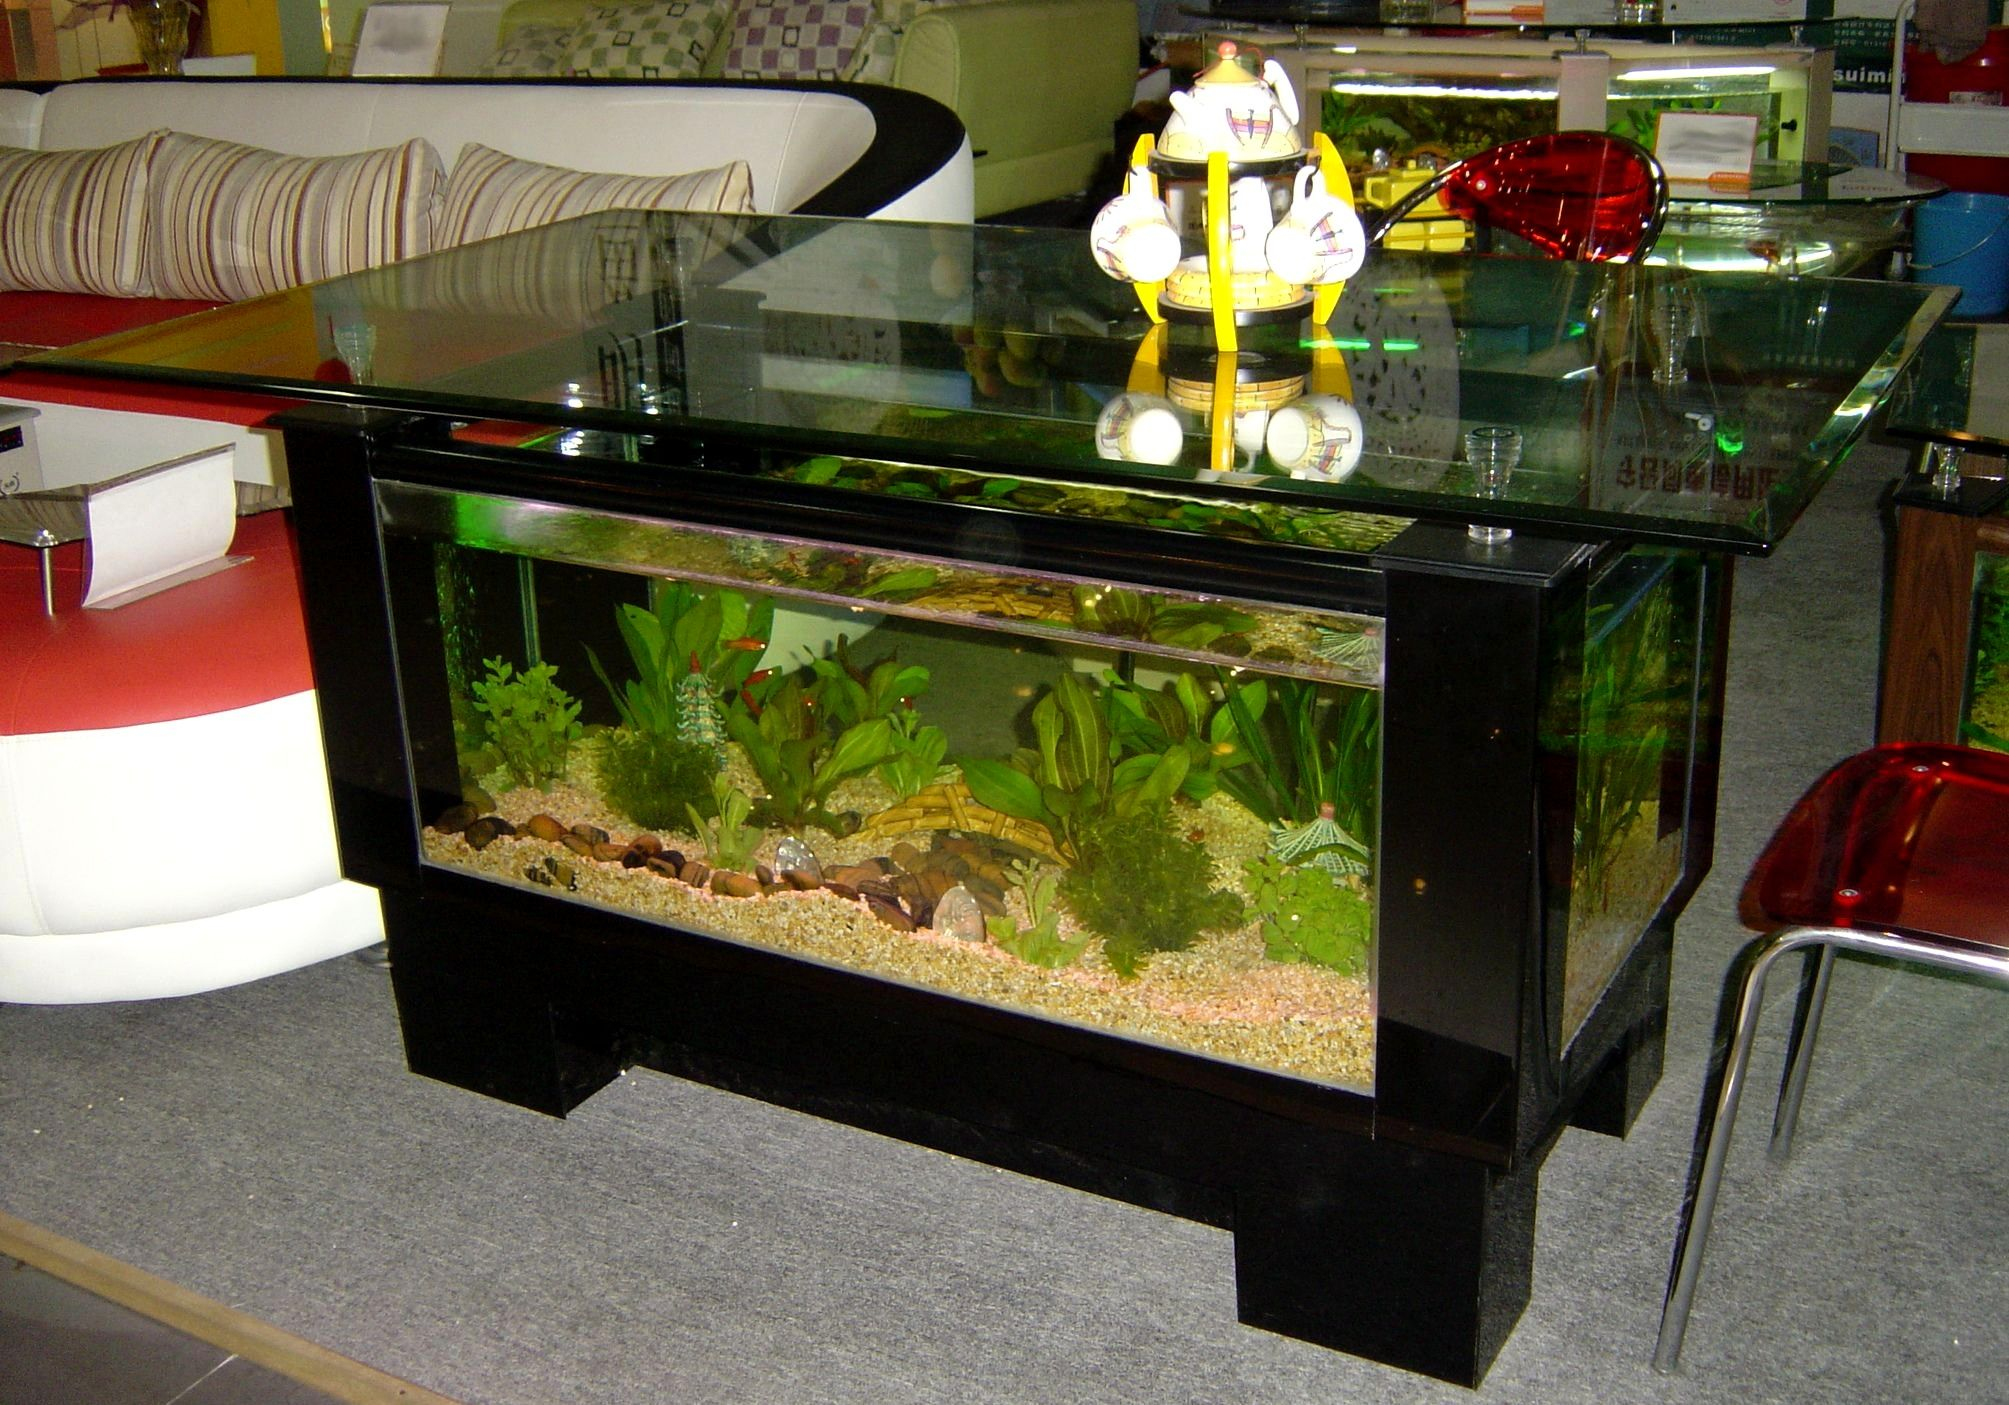 Fish aquarium in downtown toronto - We Manufacture Aquarium Coffee Tables That Is Fish Ready The Whole Combo Includes Filtration Lighting Pumps And Heater It S Even Equipped With Rollers